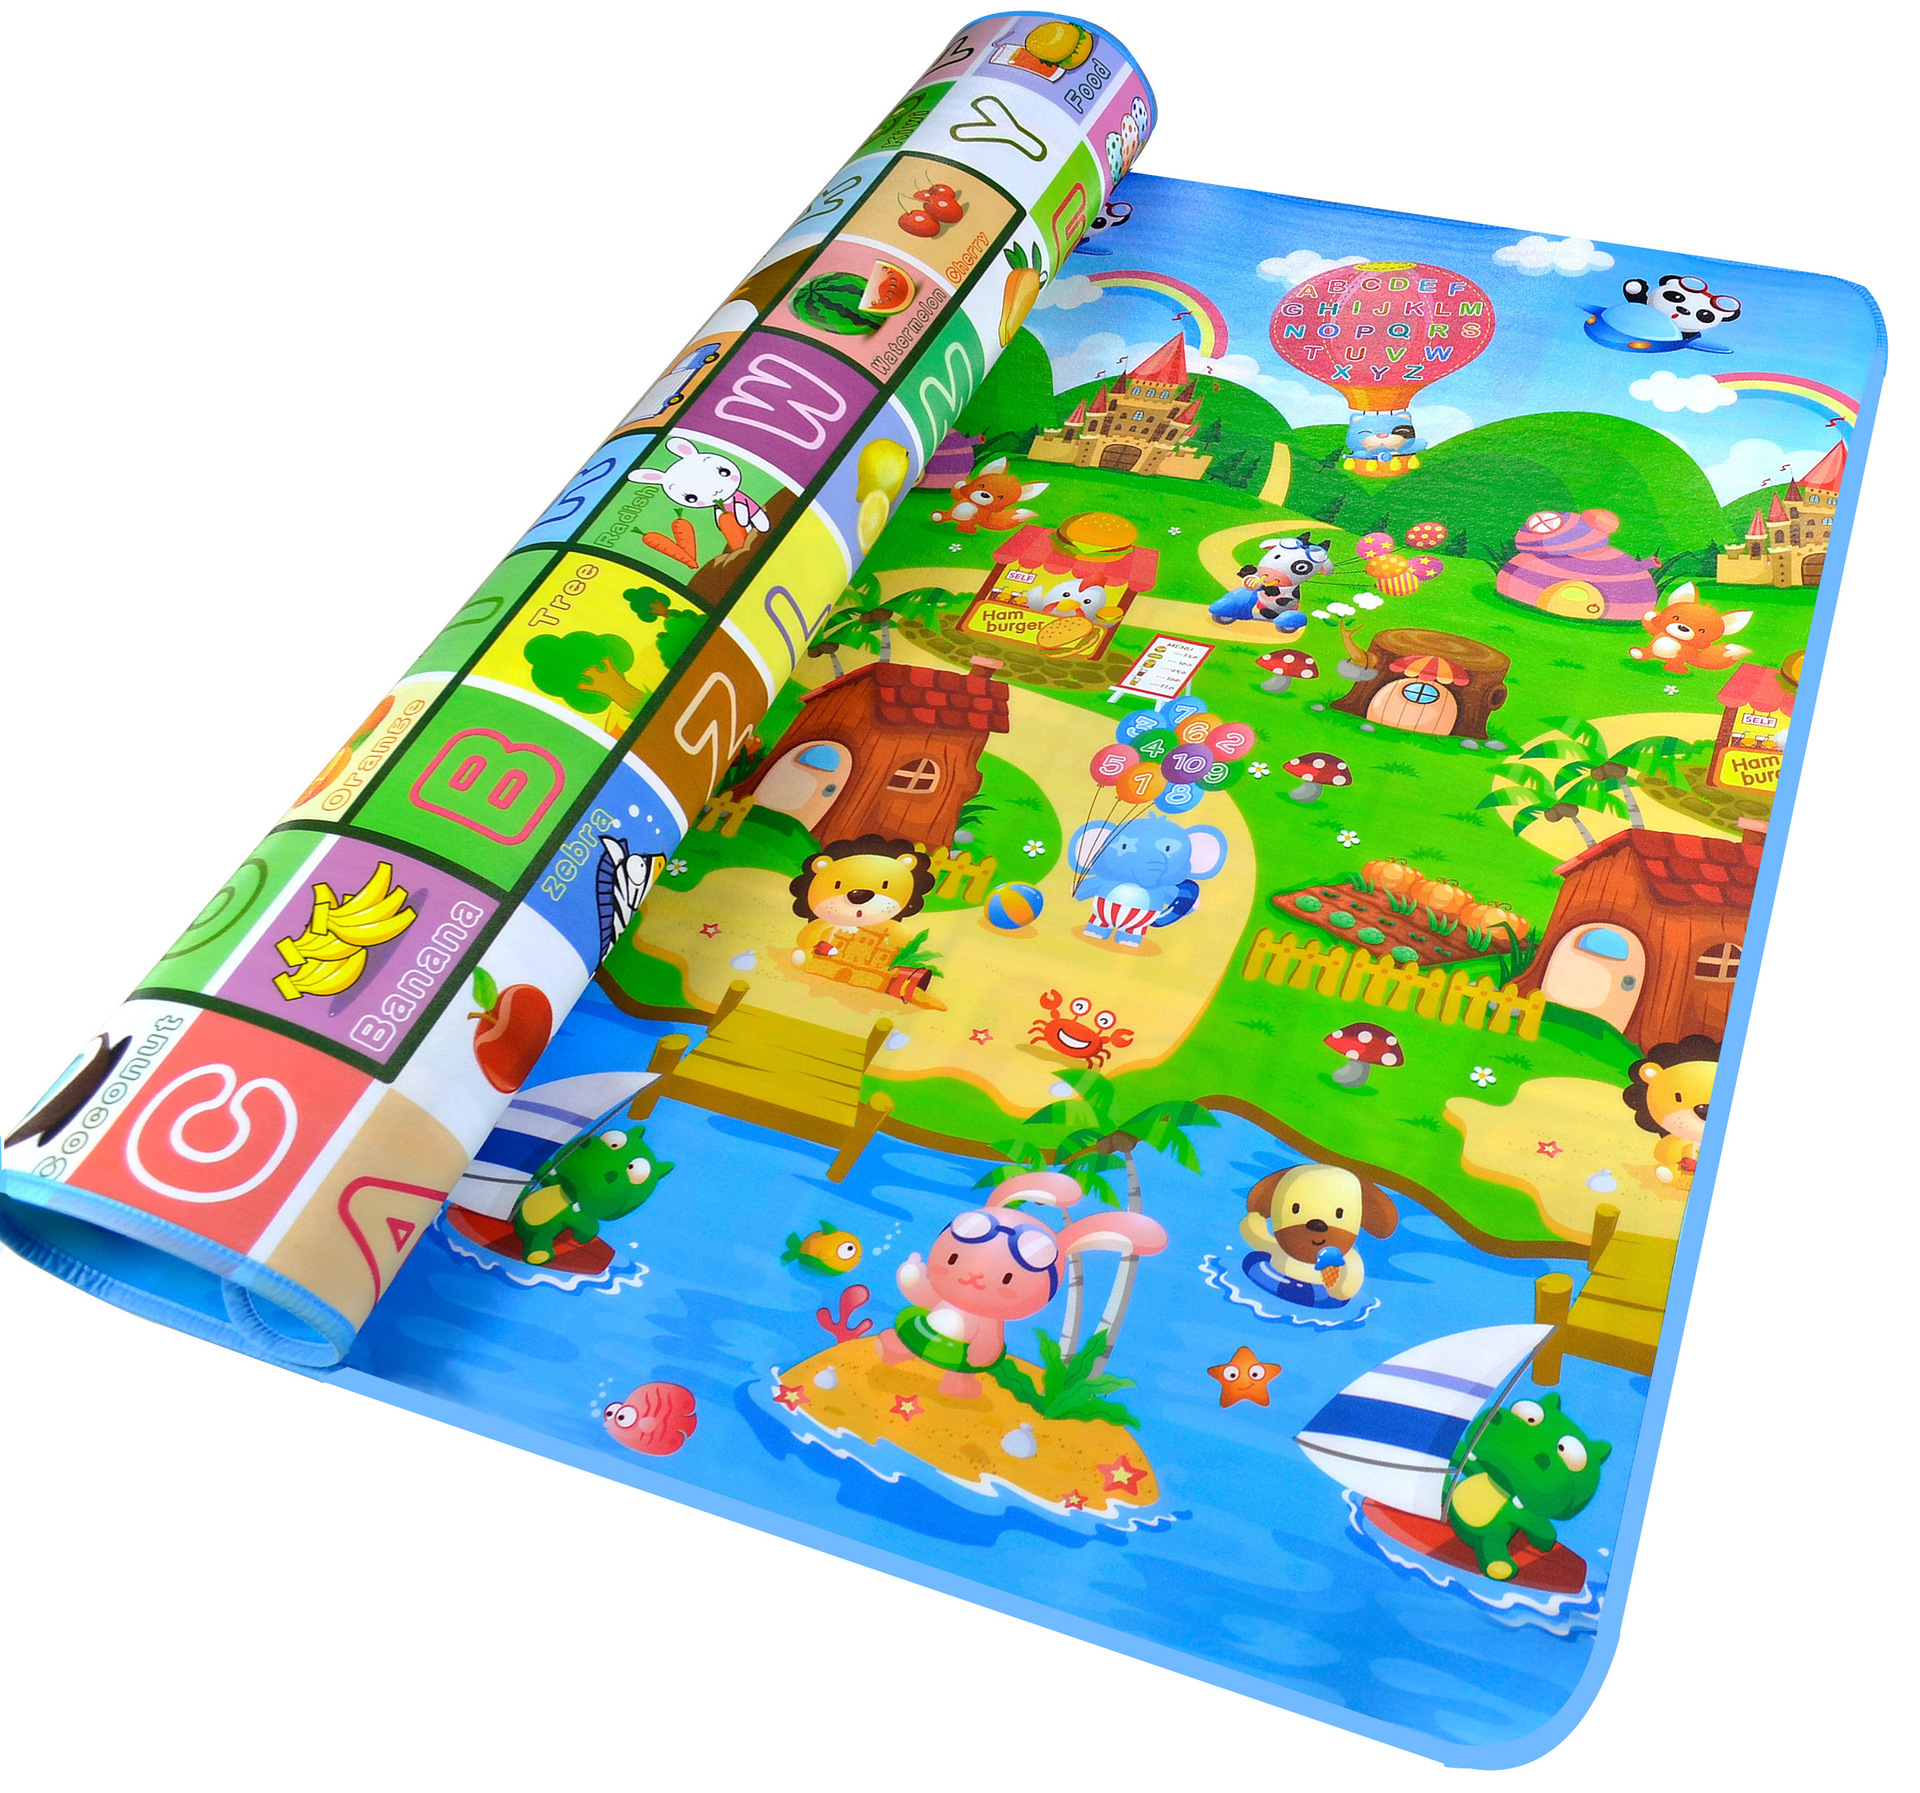 Double Sided Baby Crawling Pad, Thin Type Portable Game Mat, Sponge Foam Cushion,Letters With A Picture Of A Farm Picnic Mat